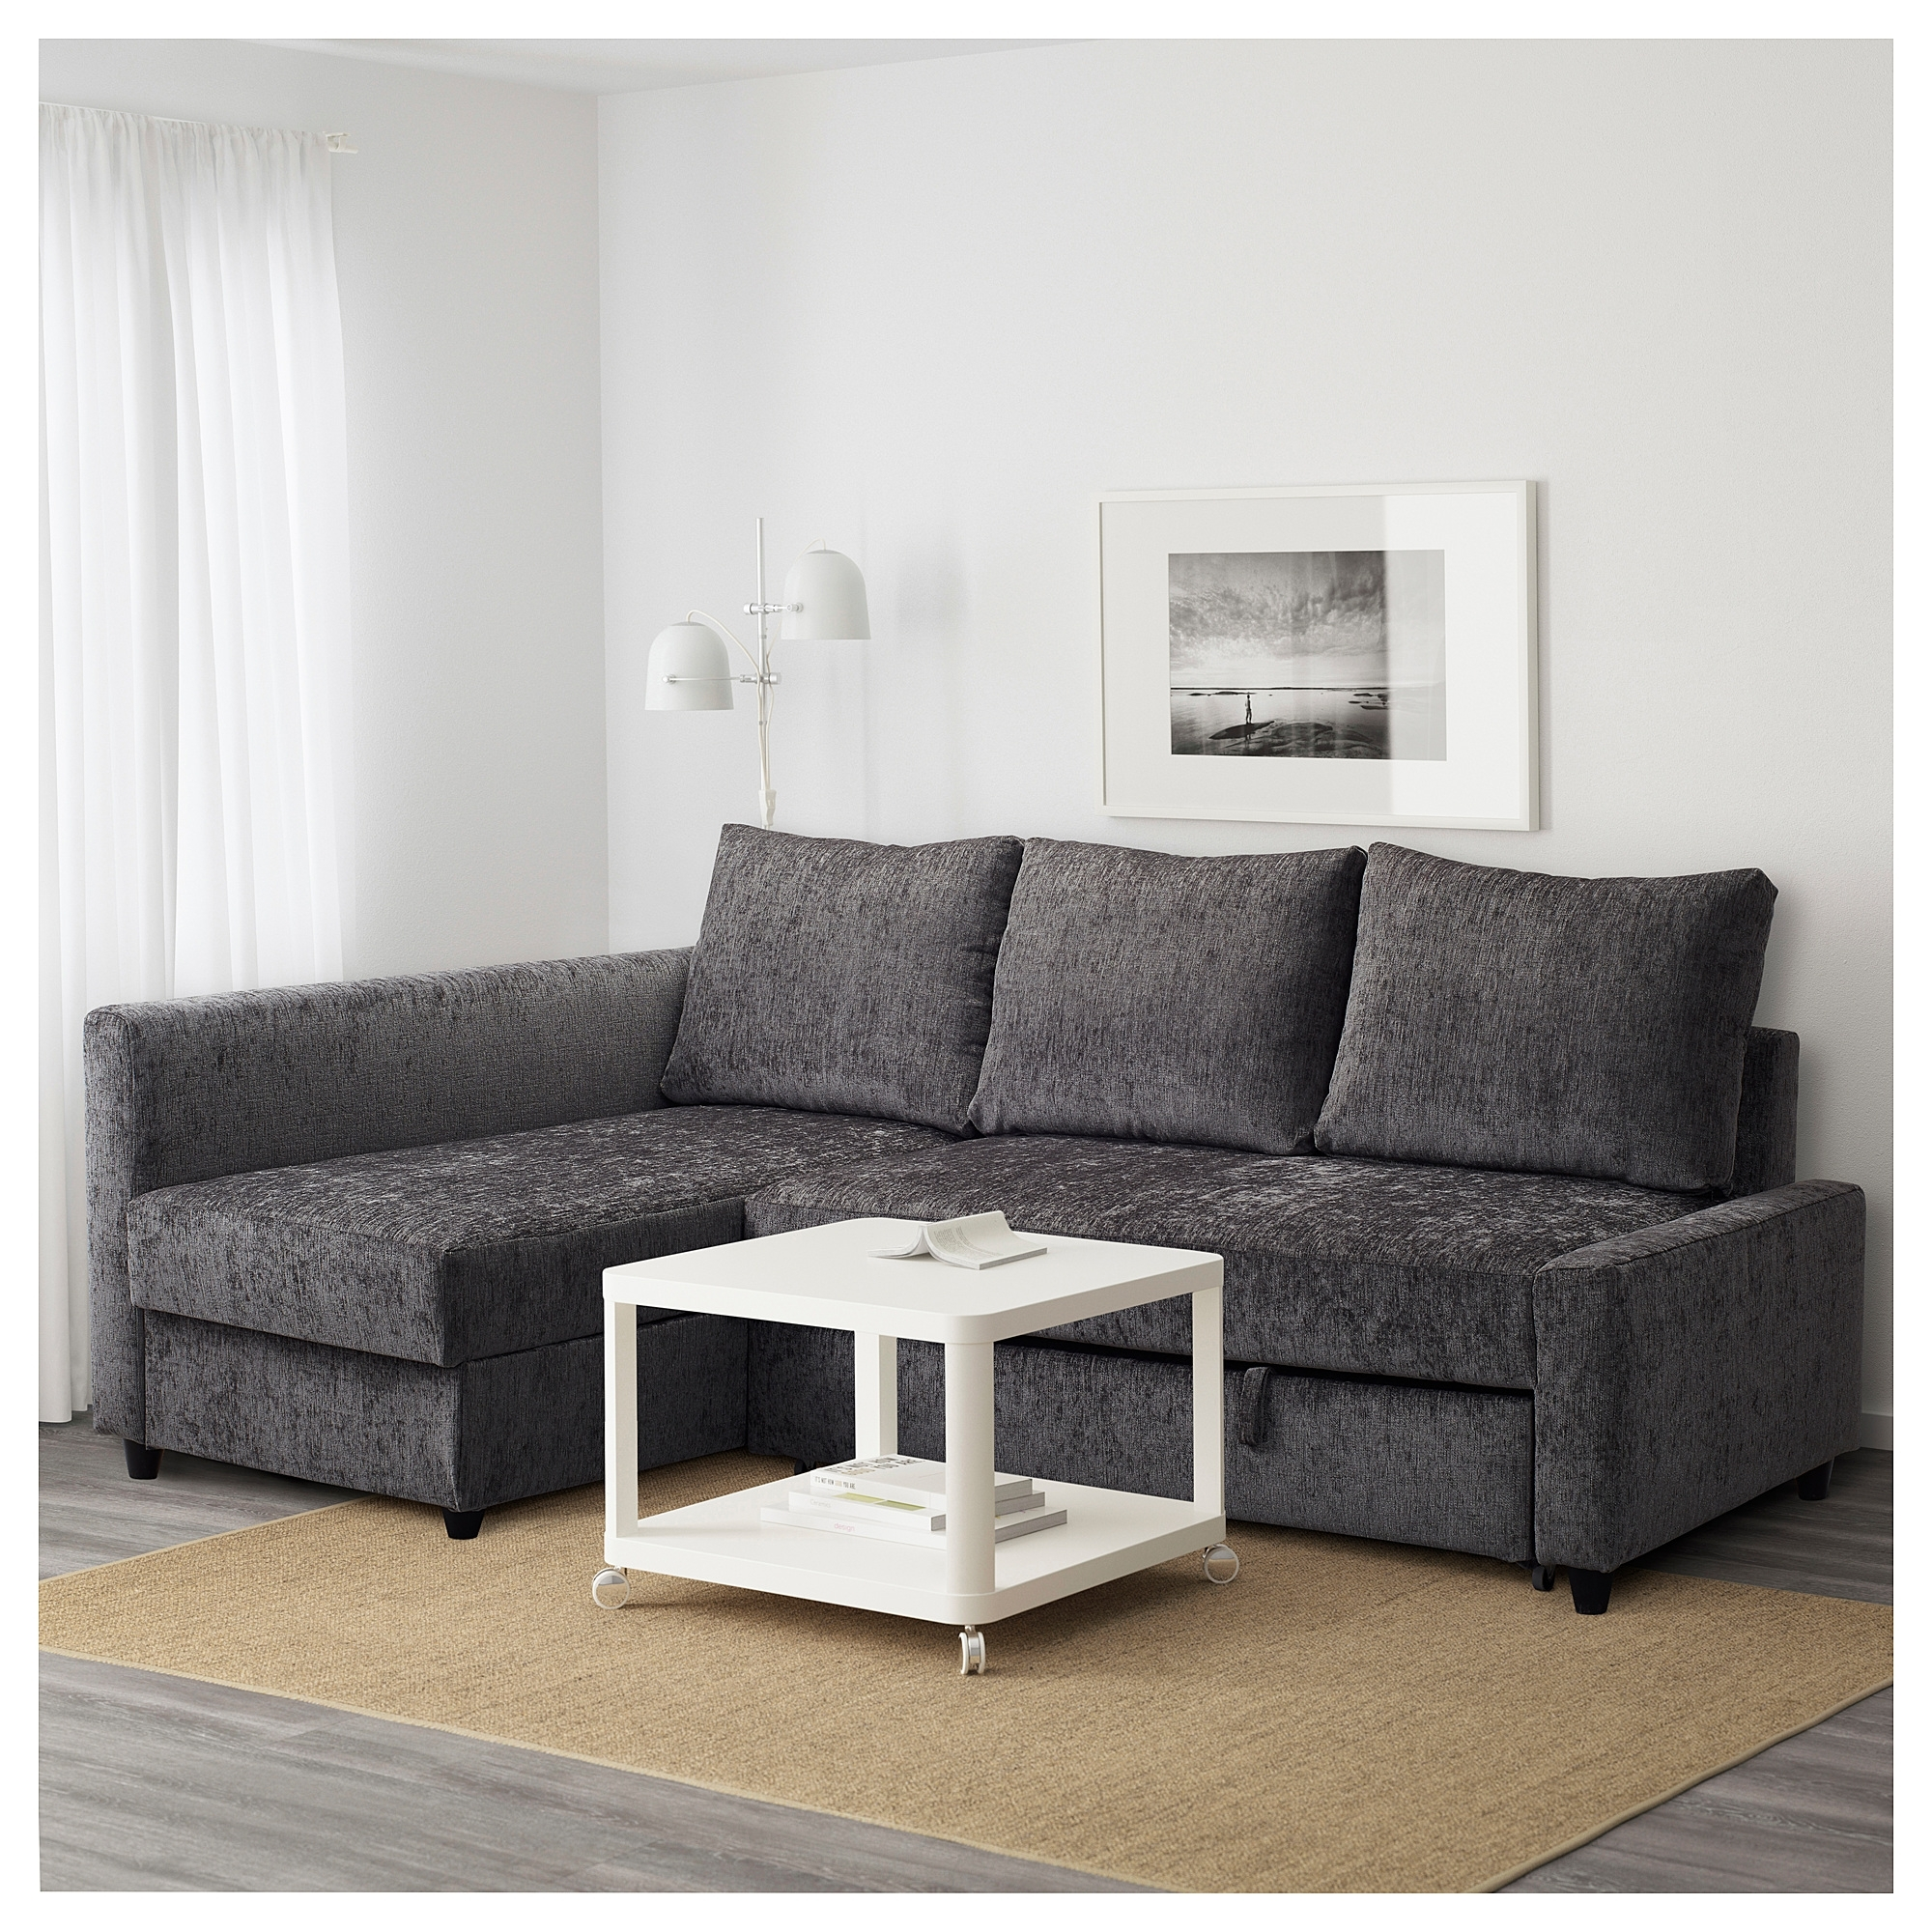 Friheten Corner Sofa-Bed With Storage Dark Grey - Ikea within Ikea Corner Sofas With Storage (Image 4 of 10)